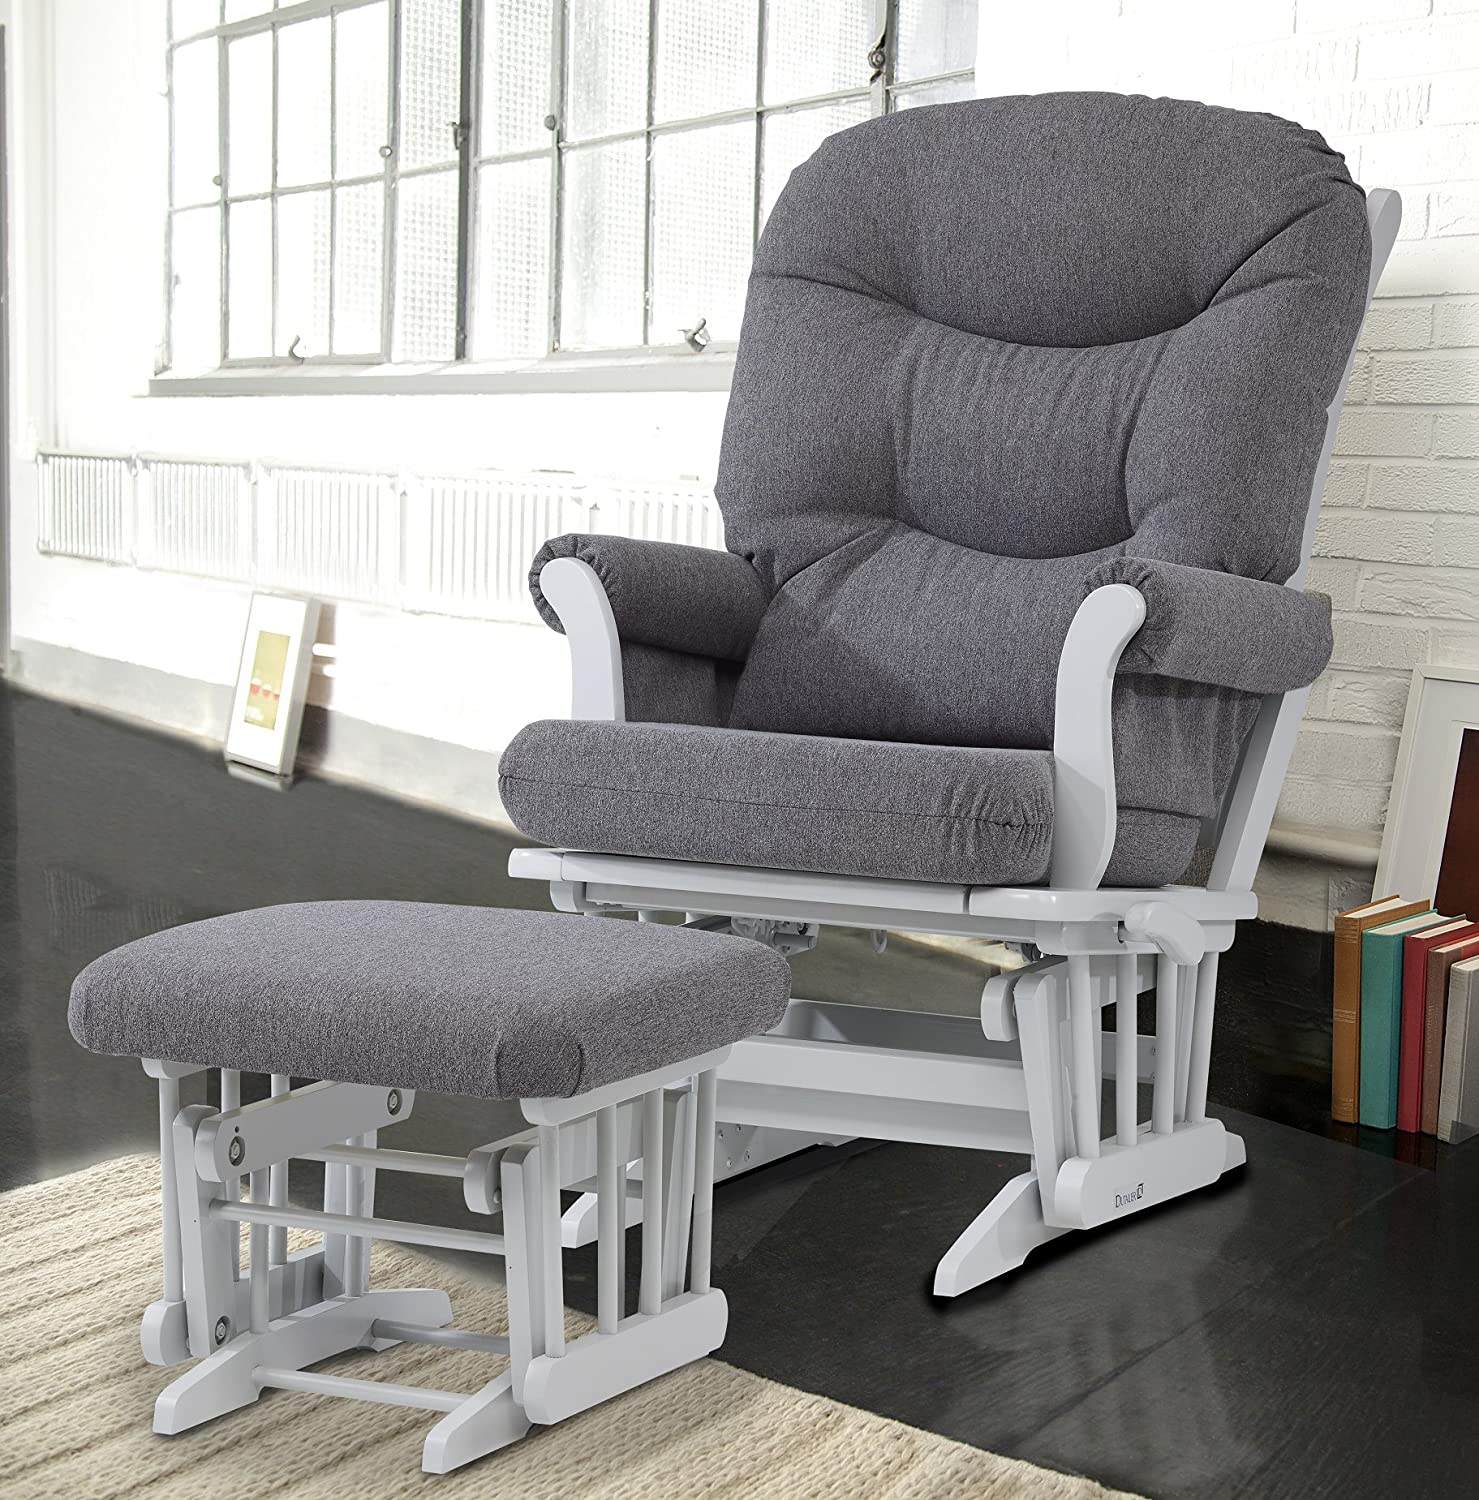 Dutailier ULTRAMOTION Glider Multi-Position Recline Sleigh and Ottoman Combo, Grey/Dark Grey C20-81A-40-3128